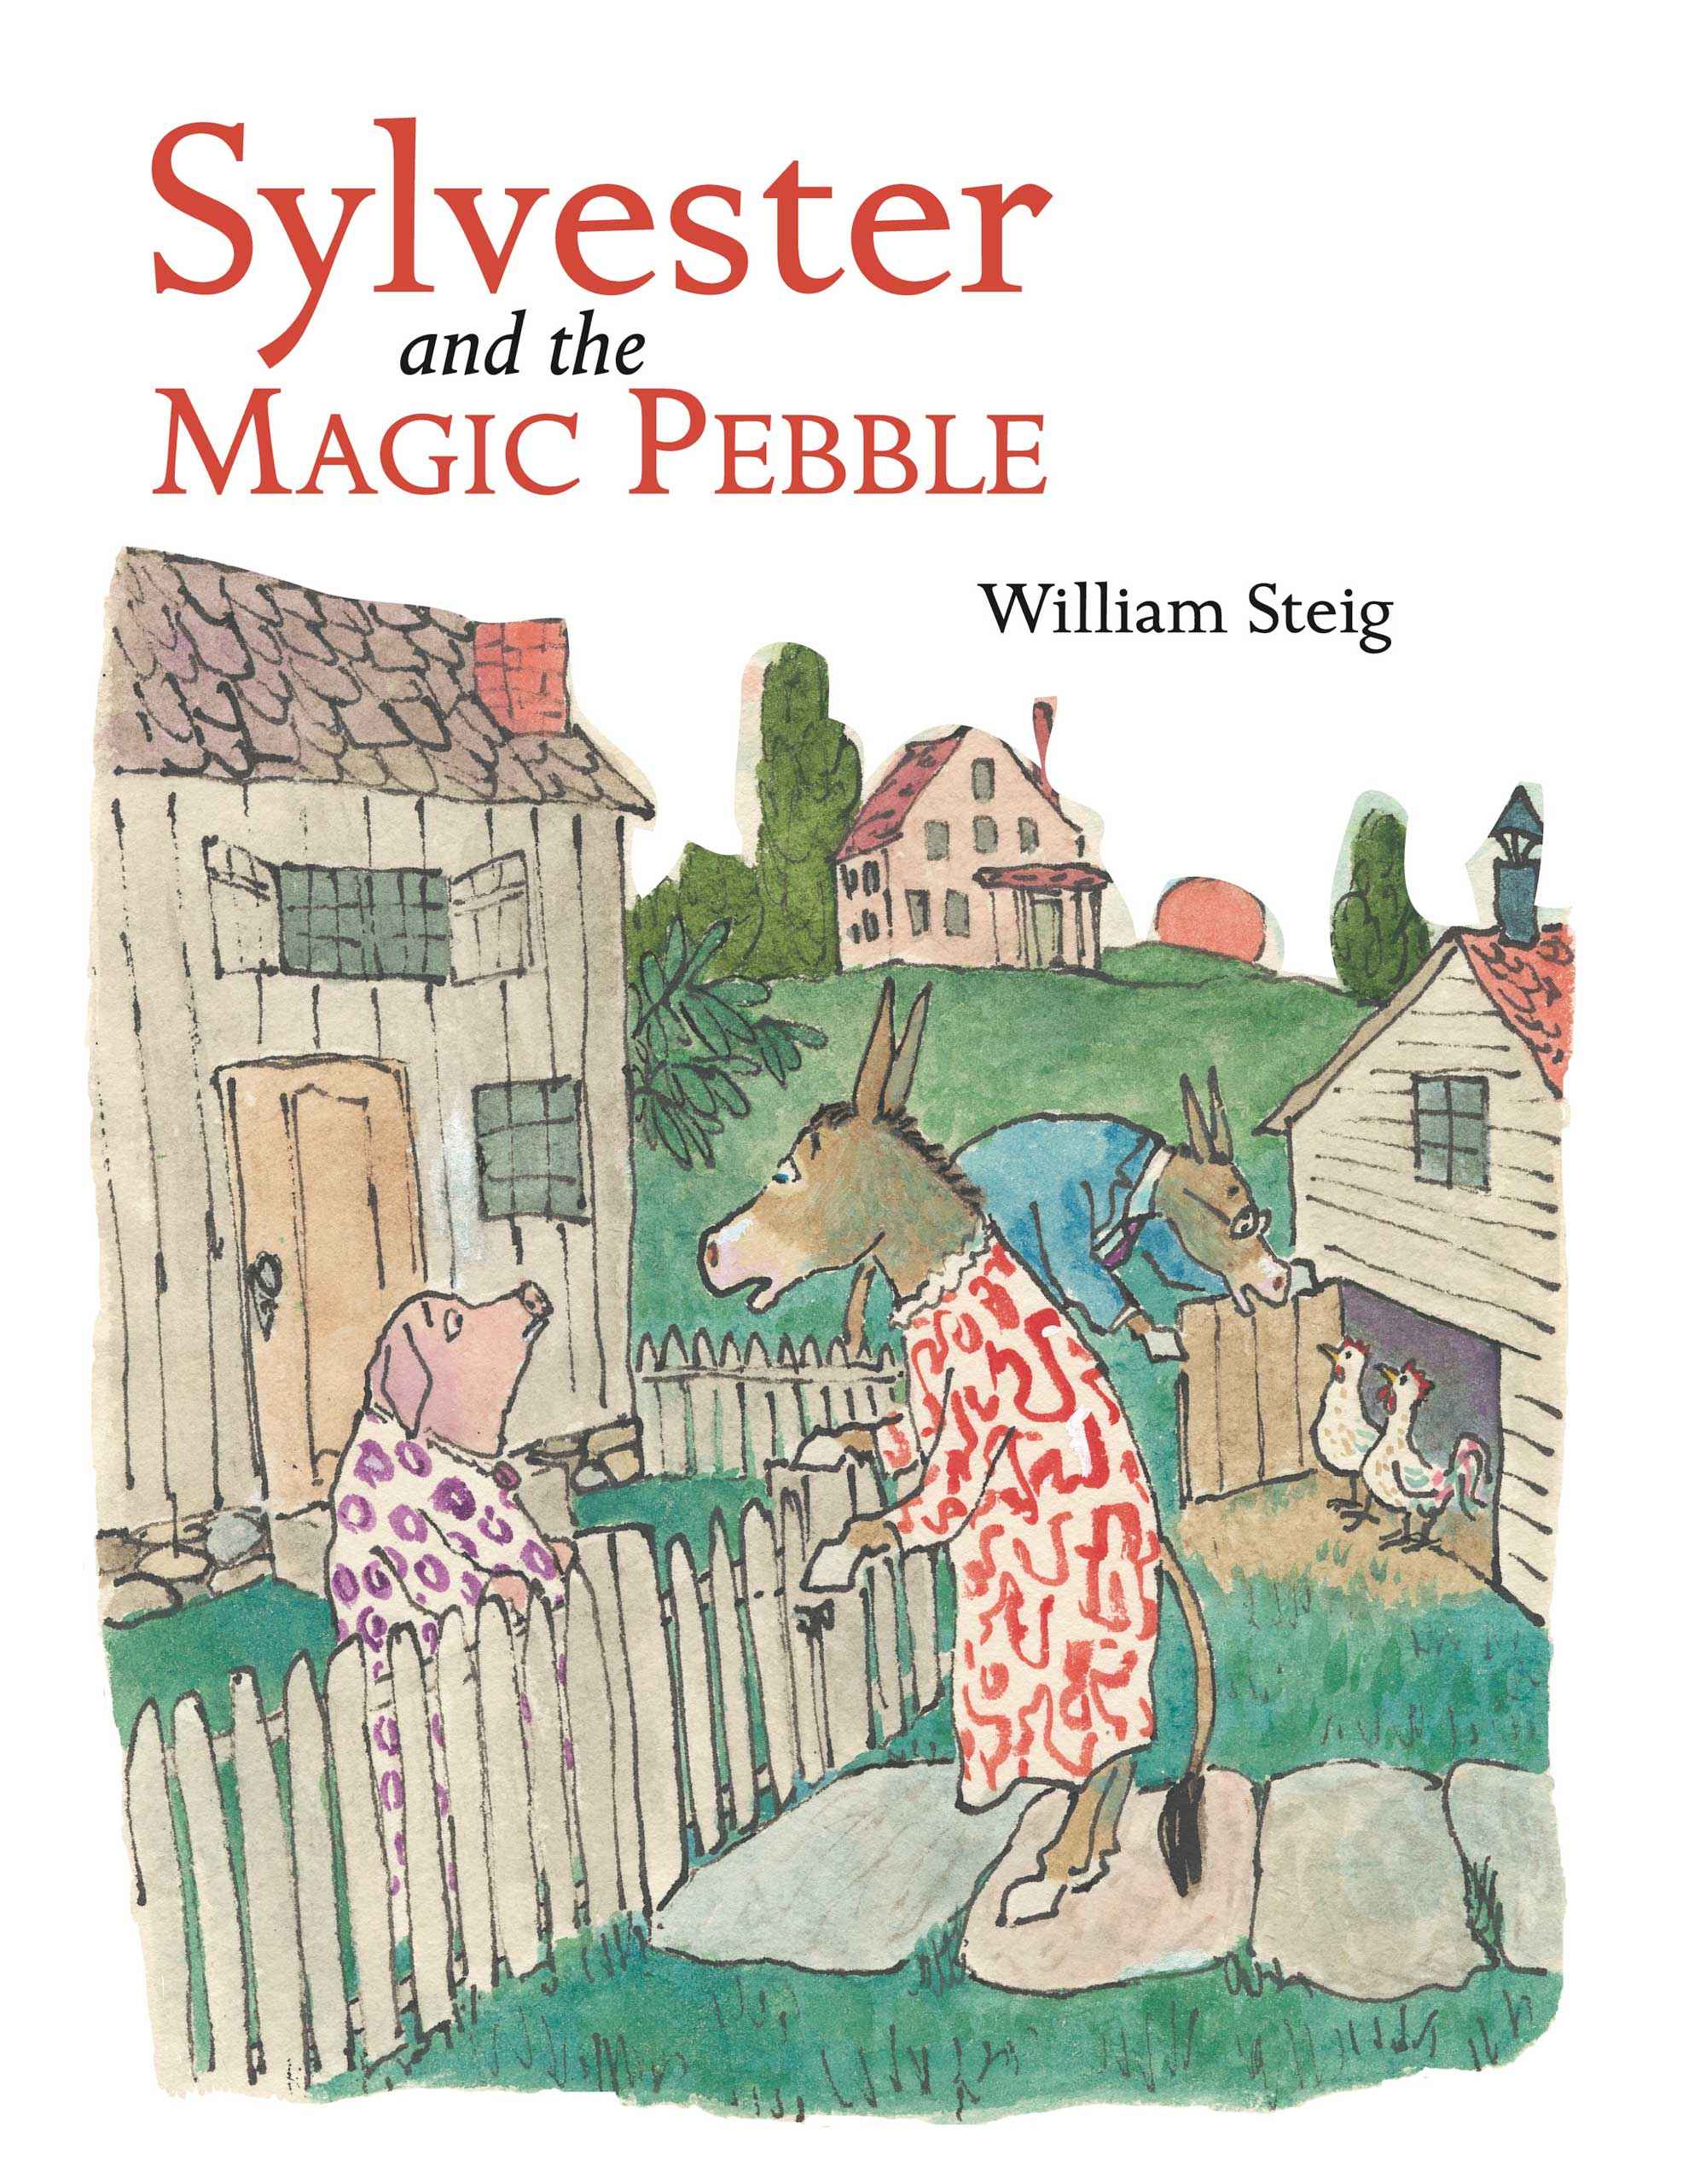 Sylvester and the Magic Pebble, by William Steig.                                                                                                                            A donkey finds a pebble that makes all his wishes come true, but accidentally turns himself to stone.                                                                                                                            Buy now: Sylvester and the Magic Pebble